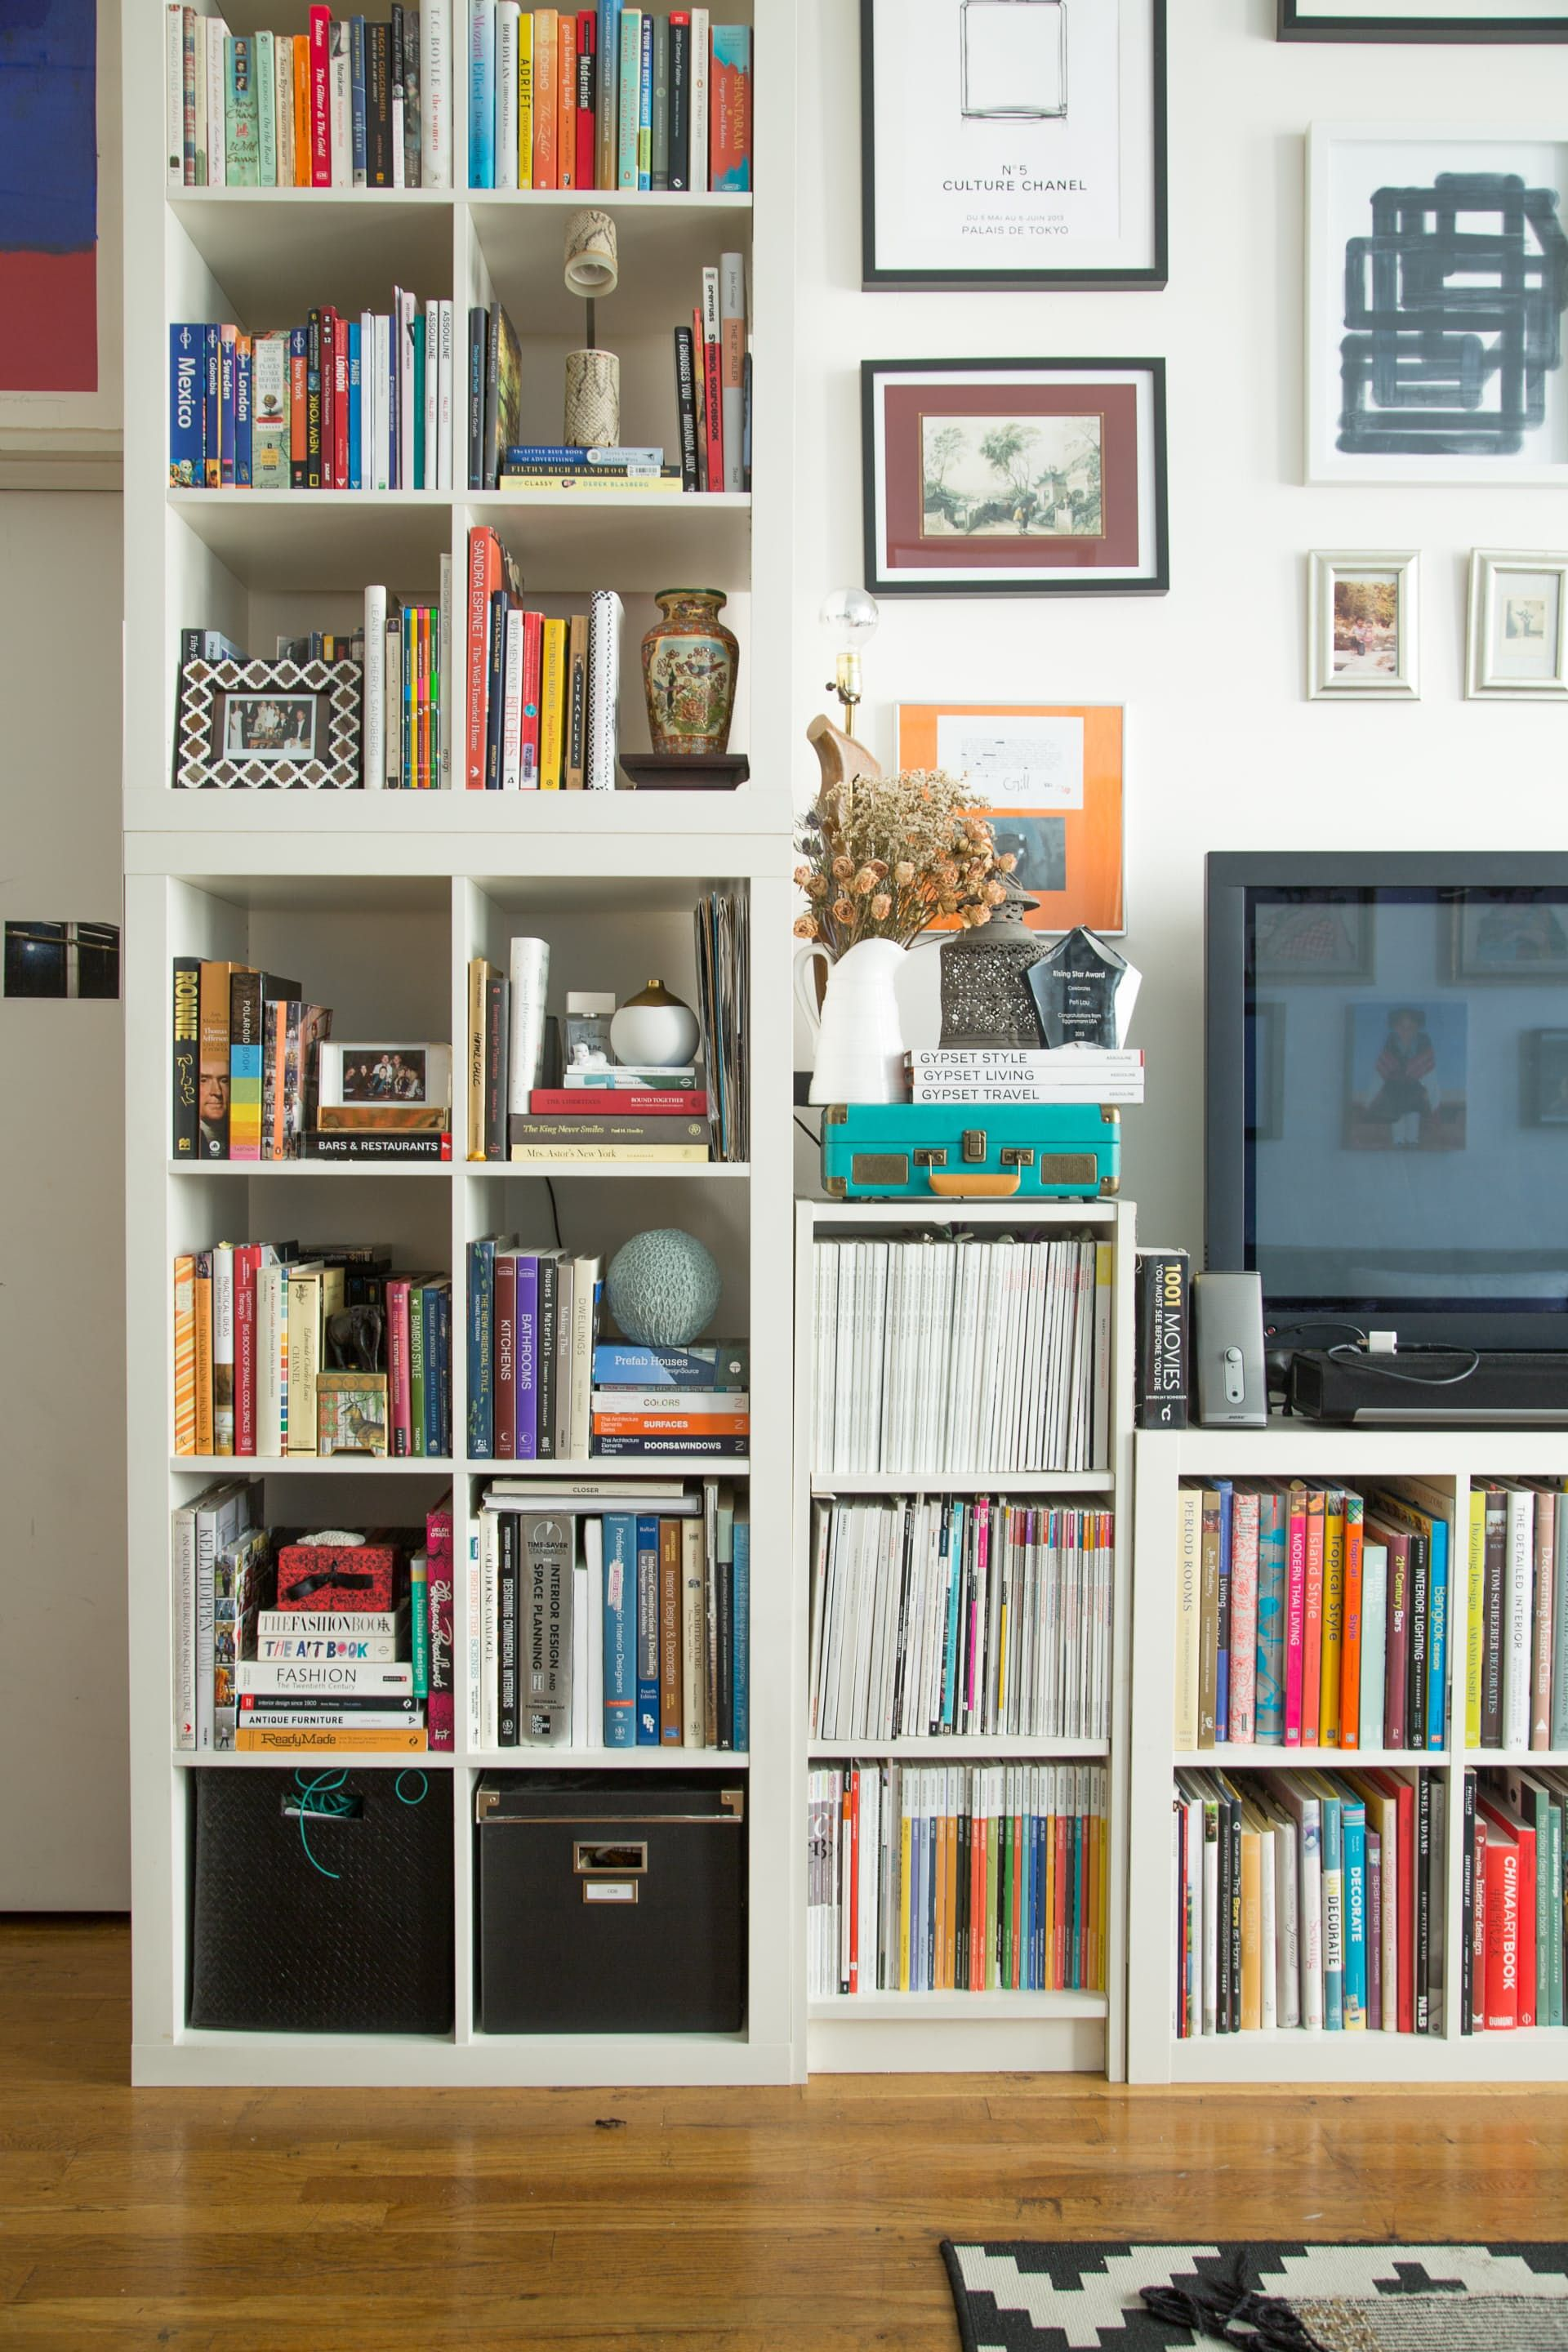 Ikea Kallax 15 Super Smart Ways To Use The Ikea Kallax Bookcase 家具